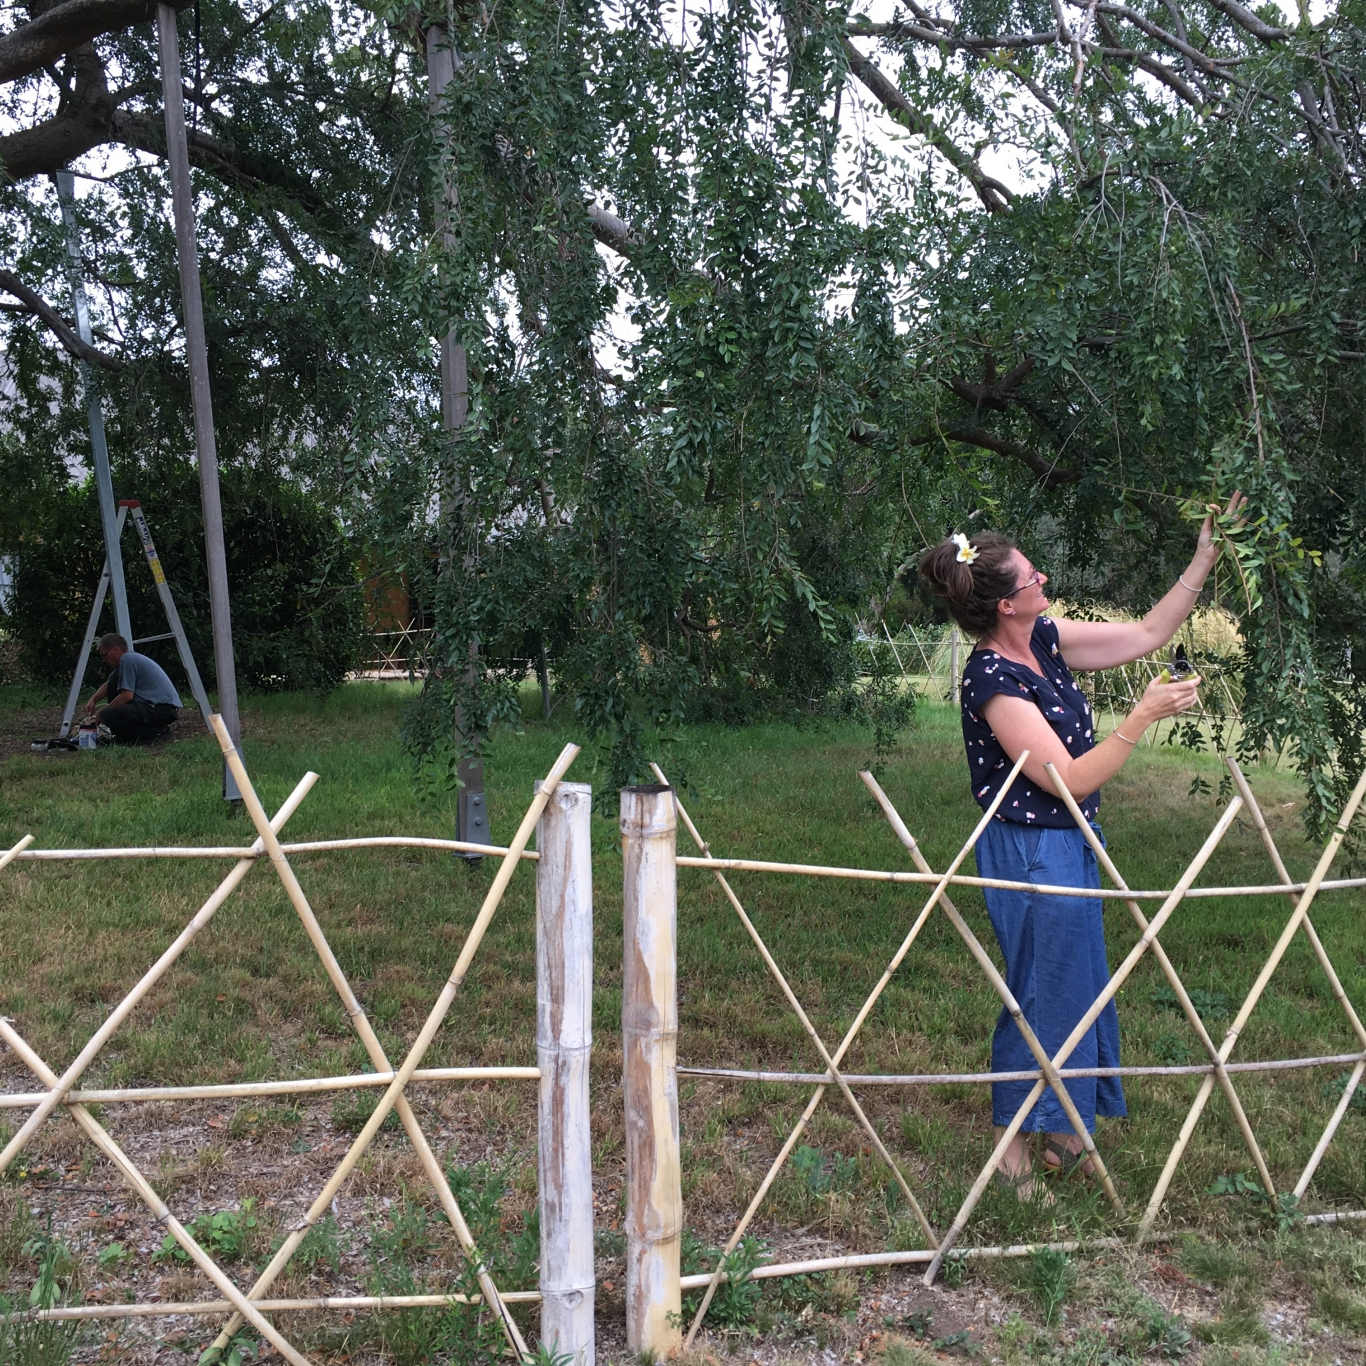 Woman behind cross-hatched bamboo fence cutting foliage